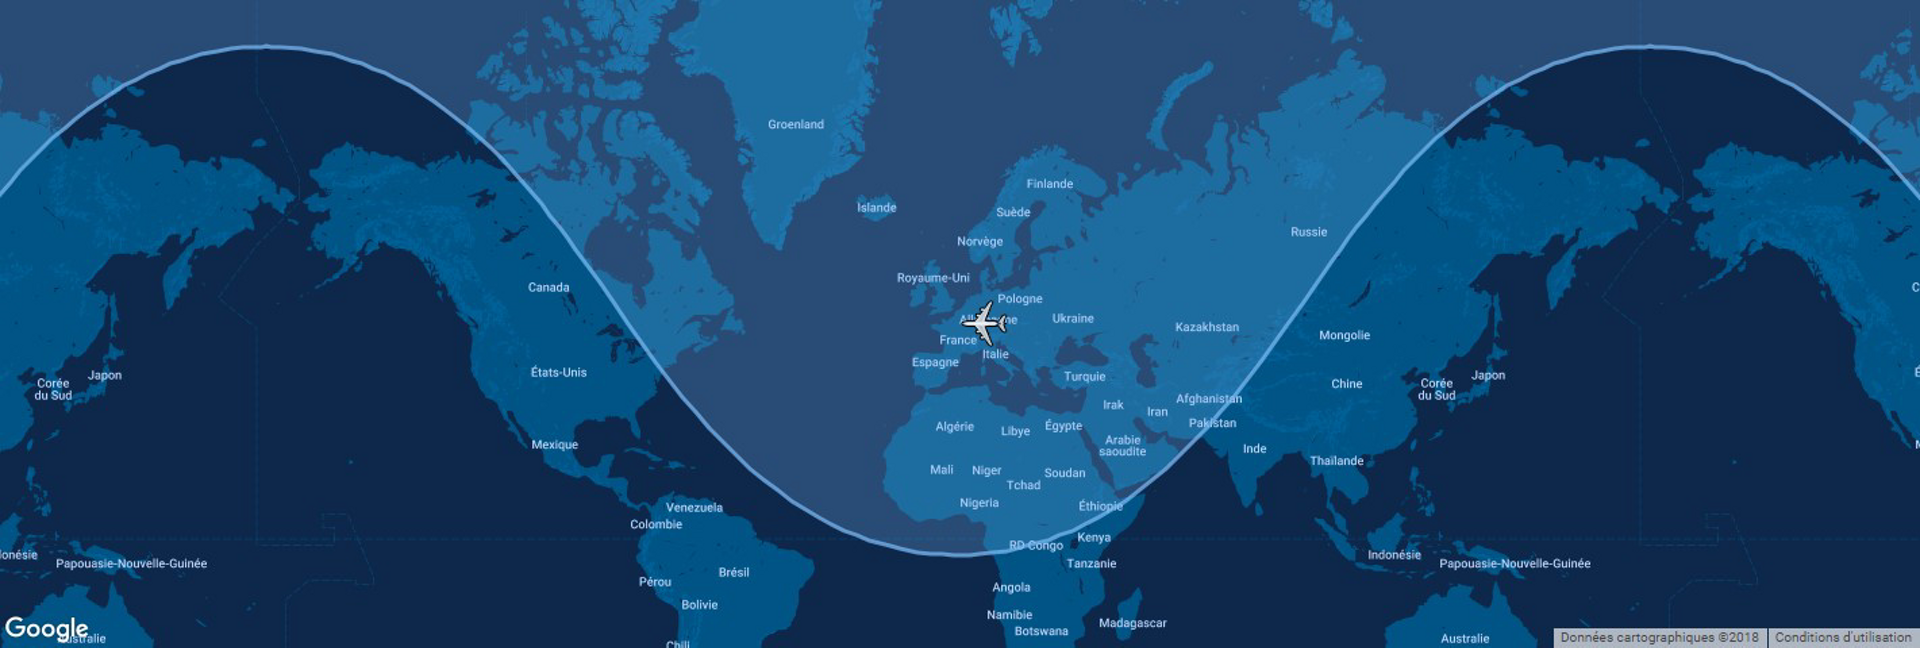 This diagram shows the typical range for Airbus' A220-300 commercial aircraft overlaid on a global map.